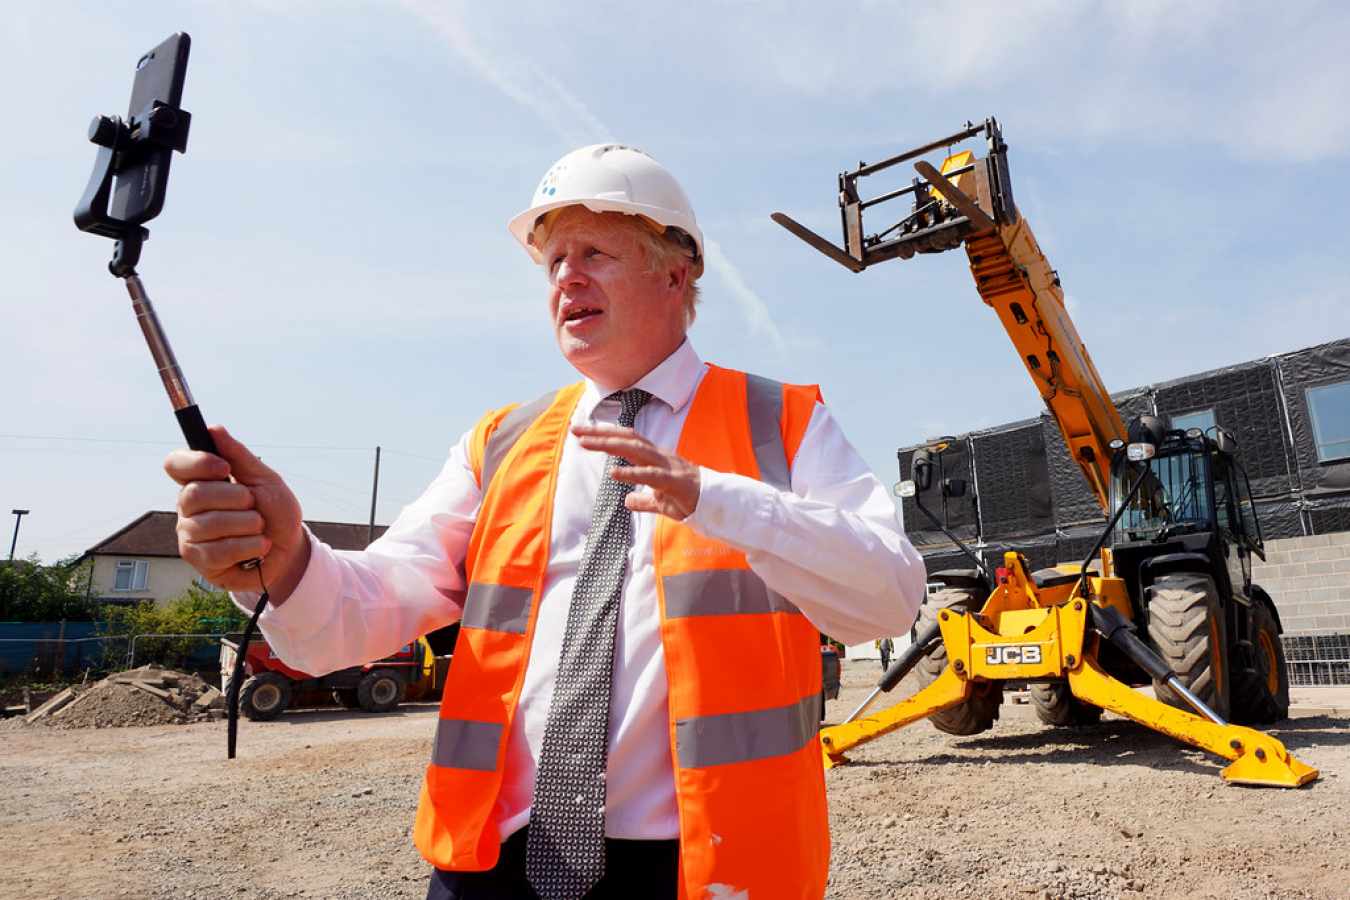 Boris Johnson Hereford County Hospital 11 August 2020